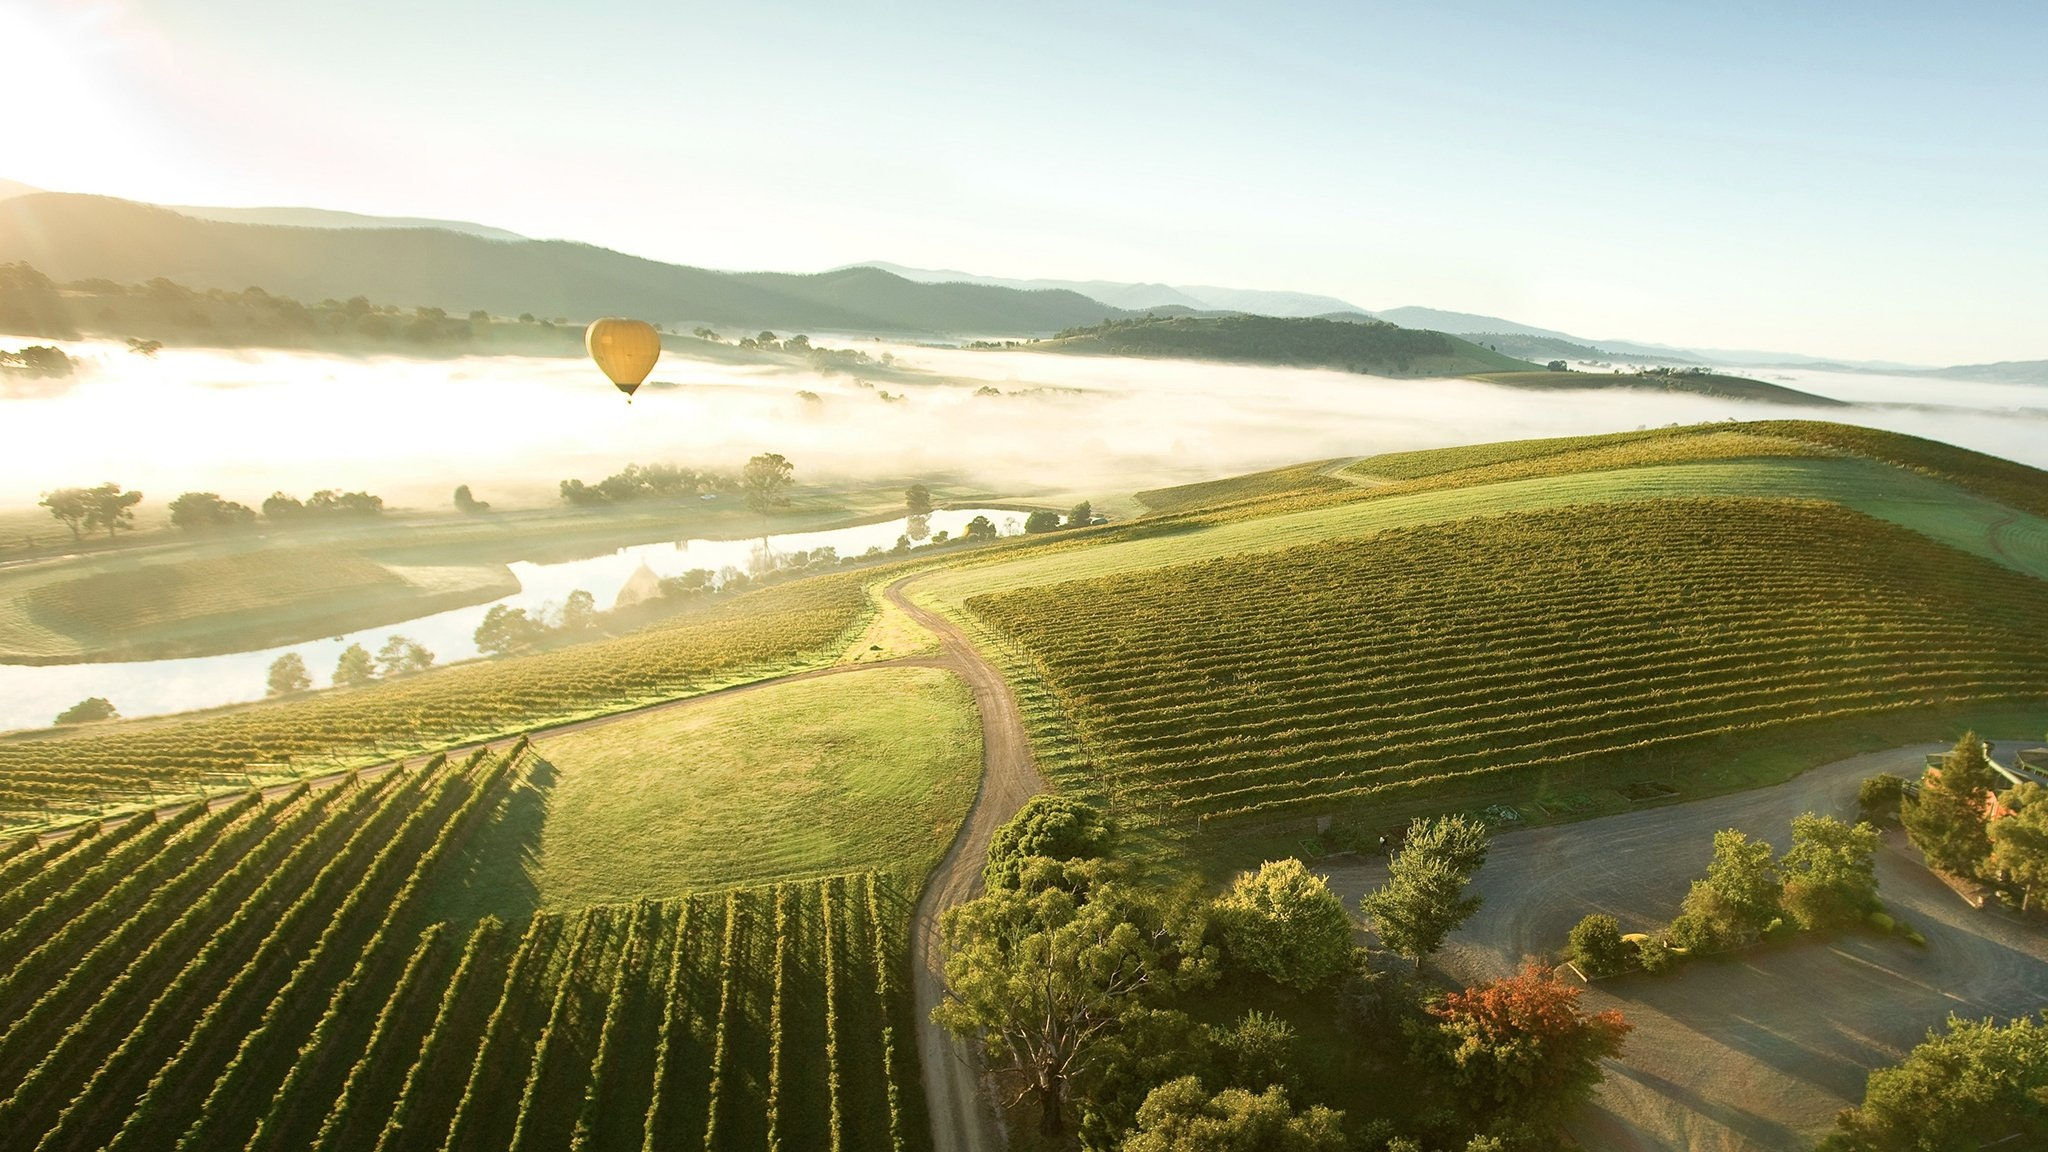 Hot Balloon over Yarra Valley Region